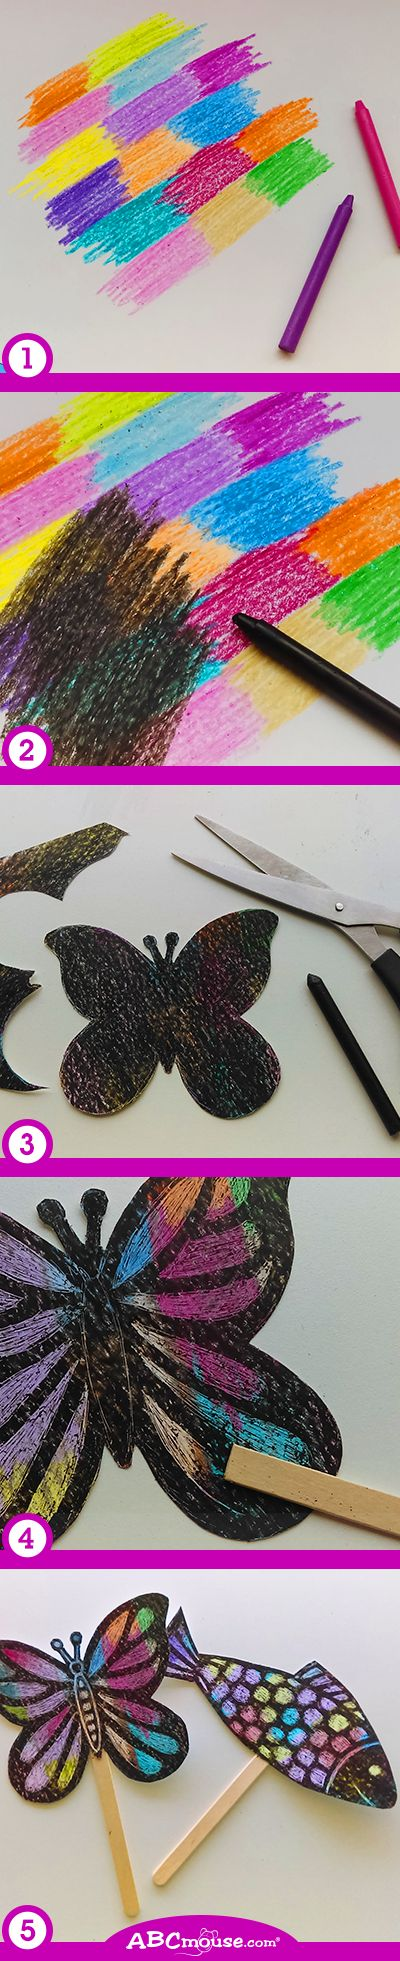 Make this versatile and colorful craft with your little one! 1) Use crayons to…